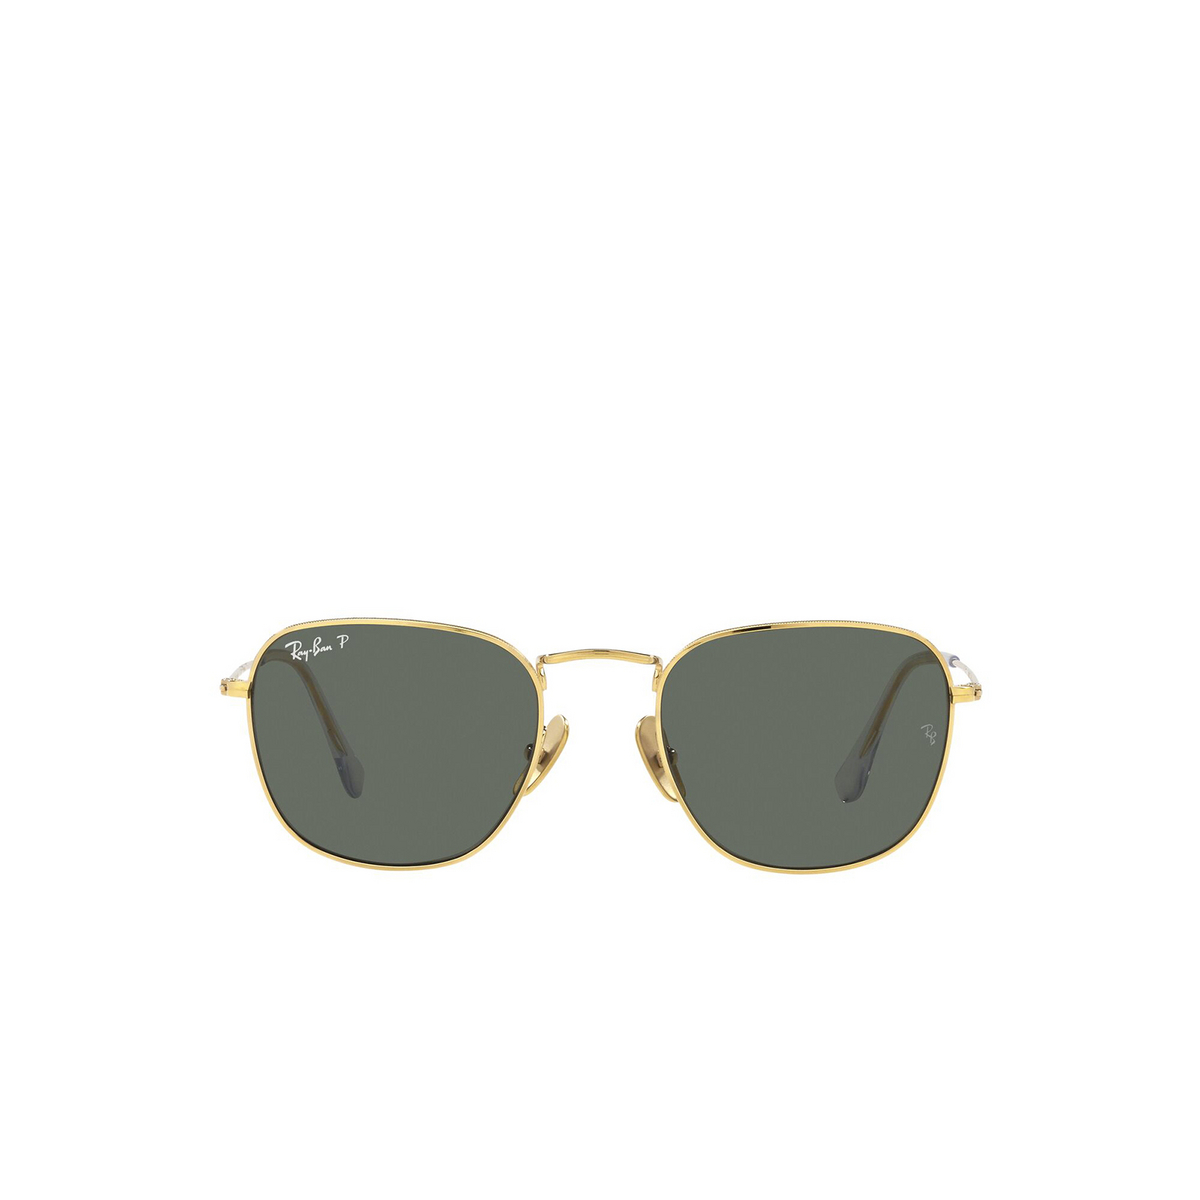 Ray-Ban® Square Sunglasses: Frank RB8157 color Legend Gold 921658 - front view.